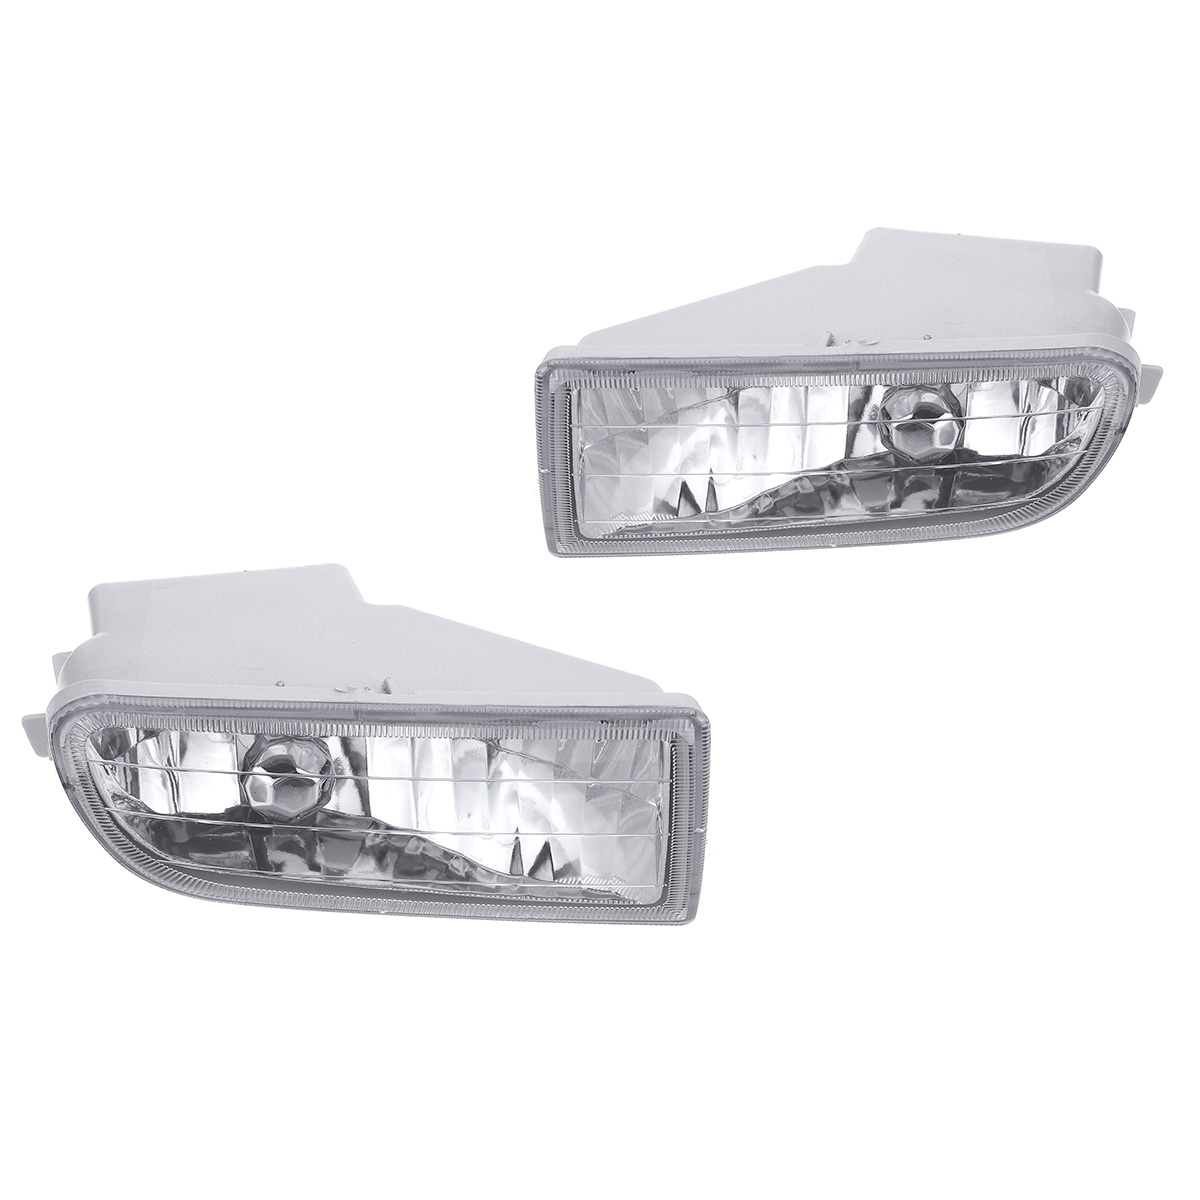 2PCS Car Front Bumper LED Fog Lights Fog Light Lamp With Bulb For <font><b>Toyota</b></font> <font><b>Corolla</b></font> AE100 <font><b>AE101</b></font> 1993-1997 A1649060451 image